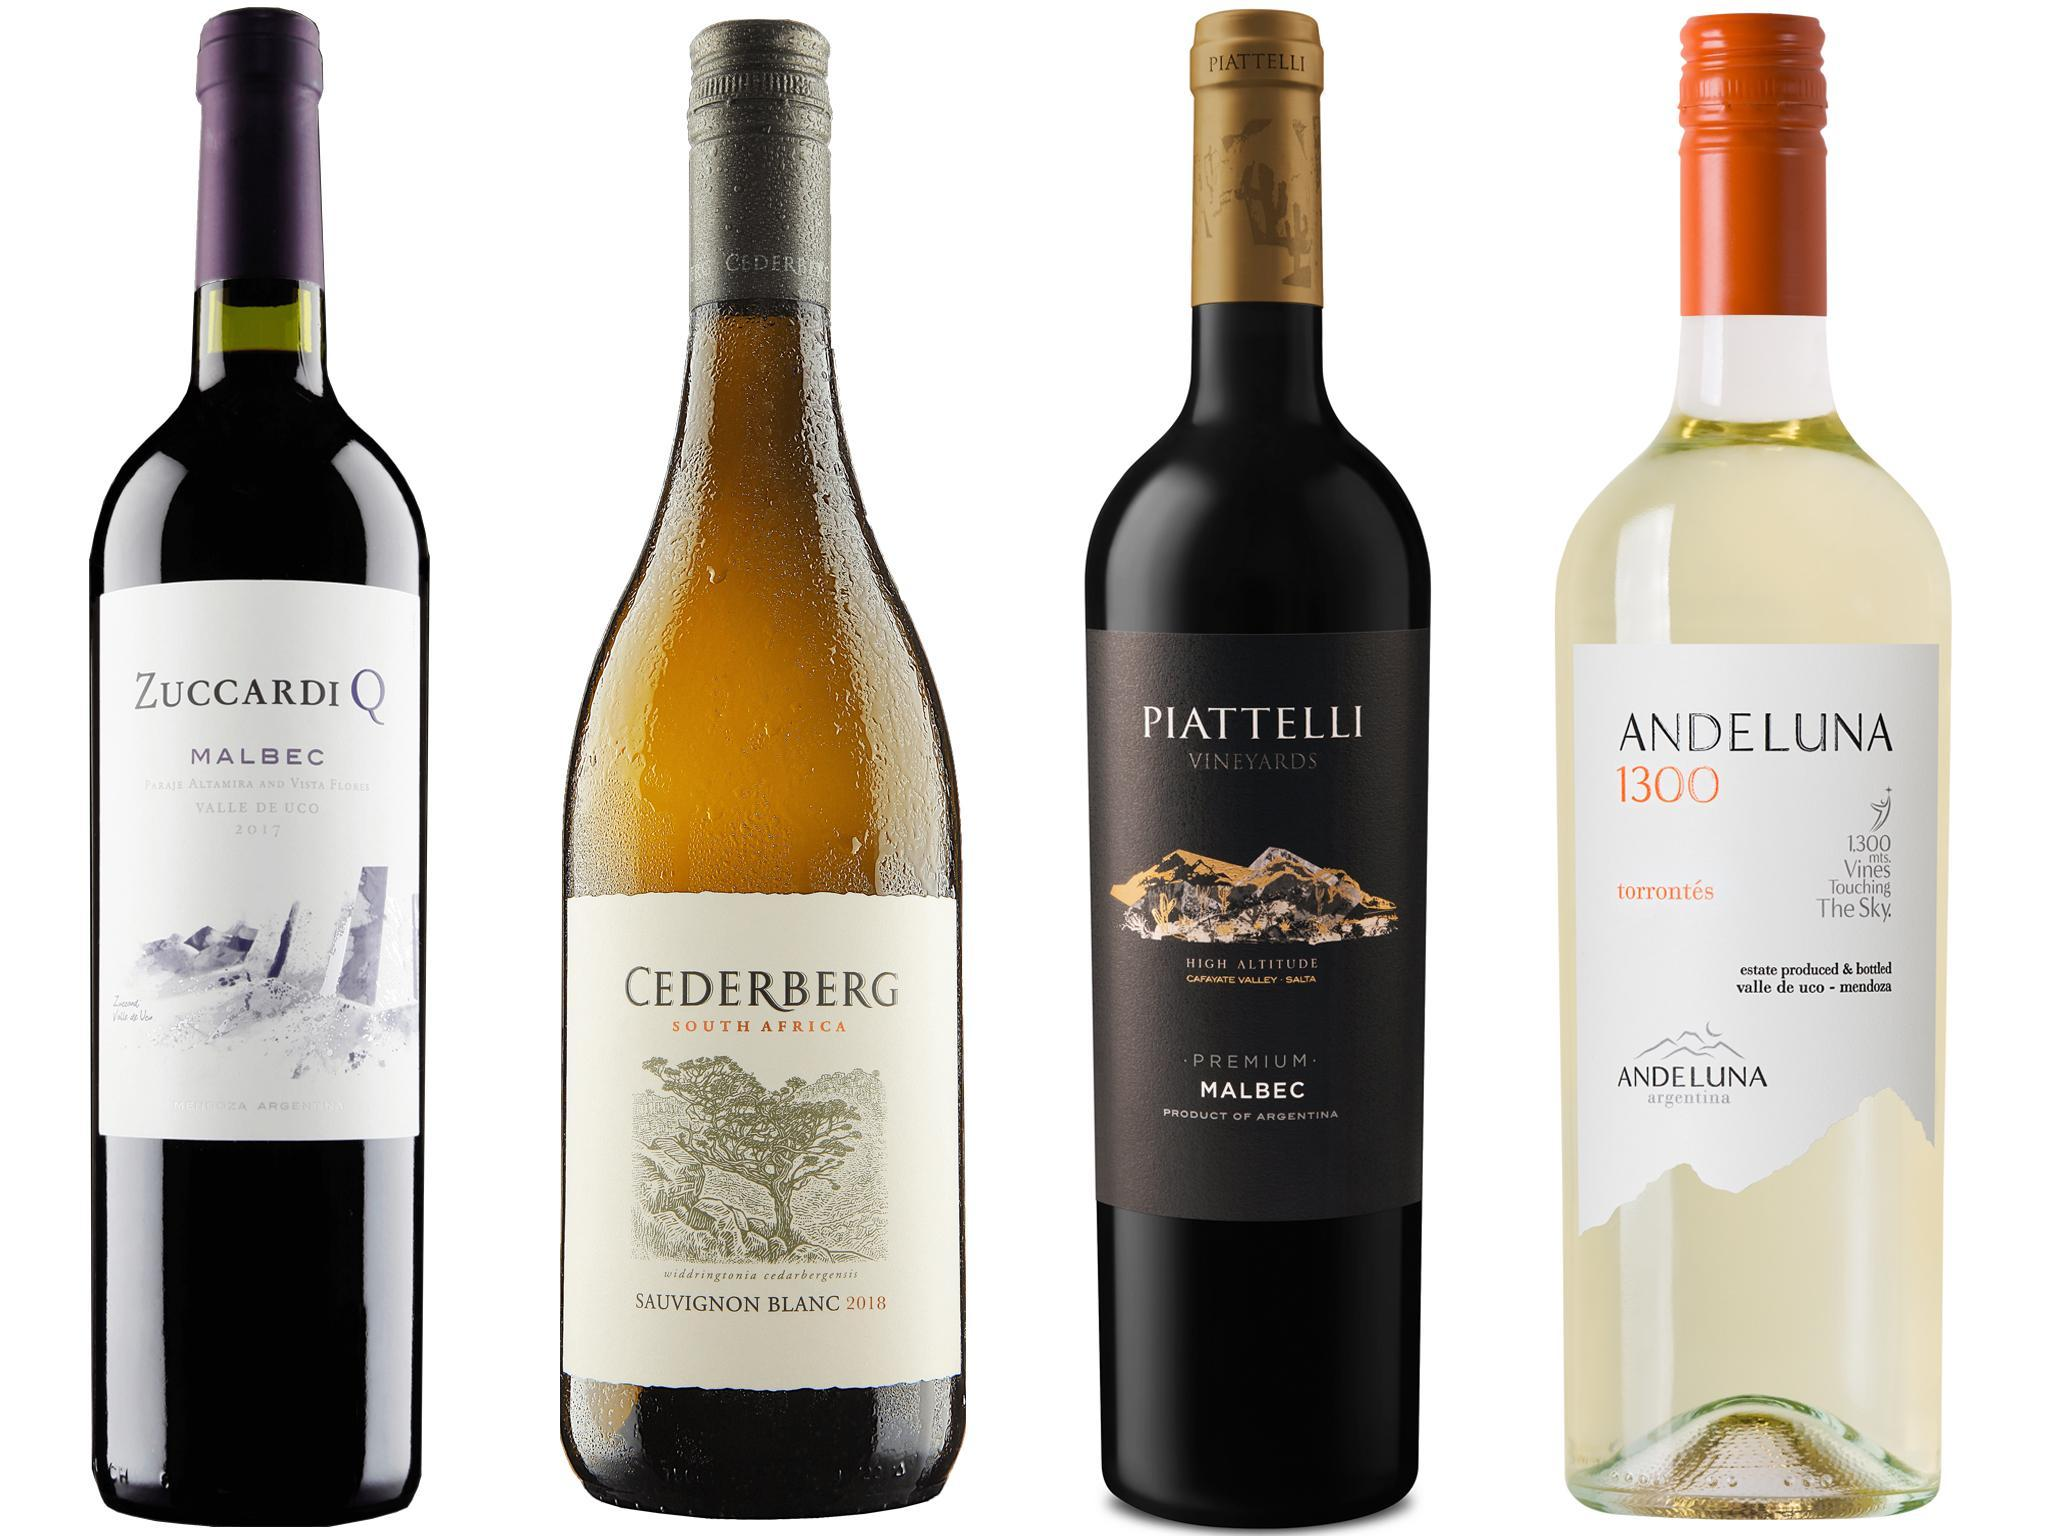 8 Wines From High-altitude Vineyards photo